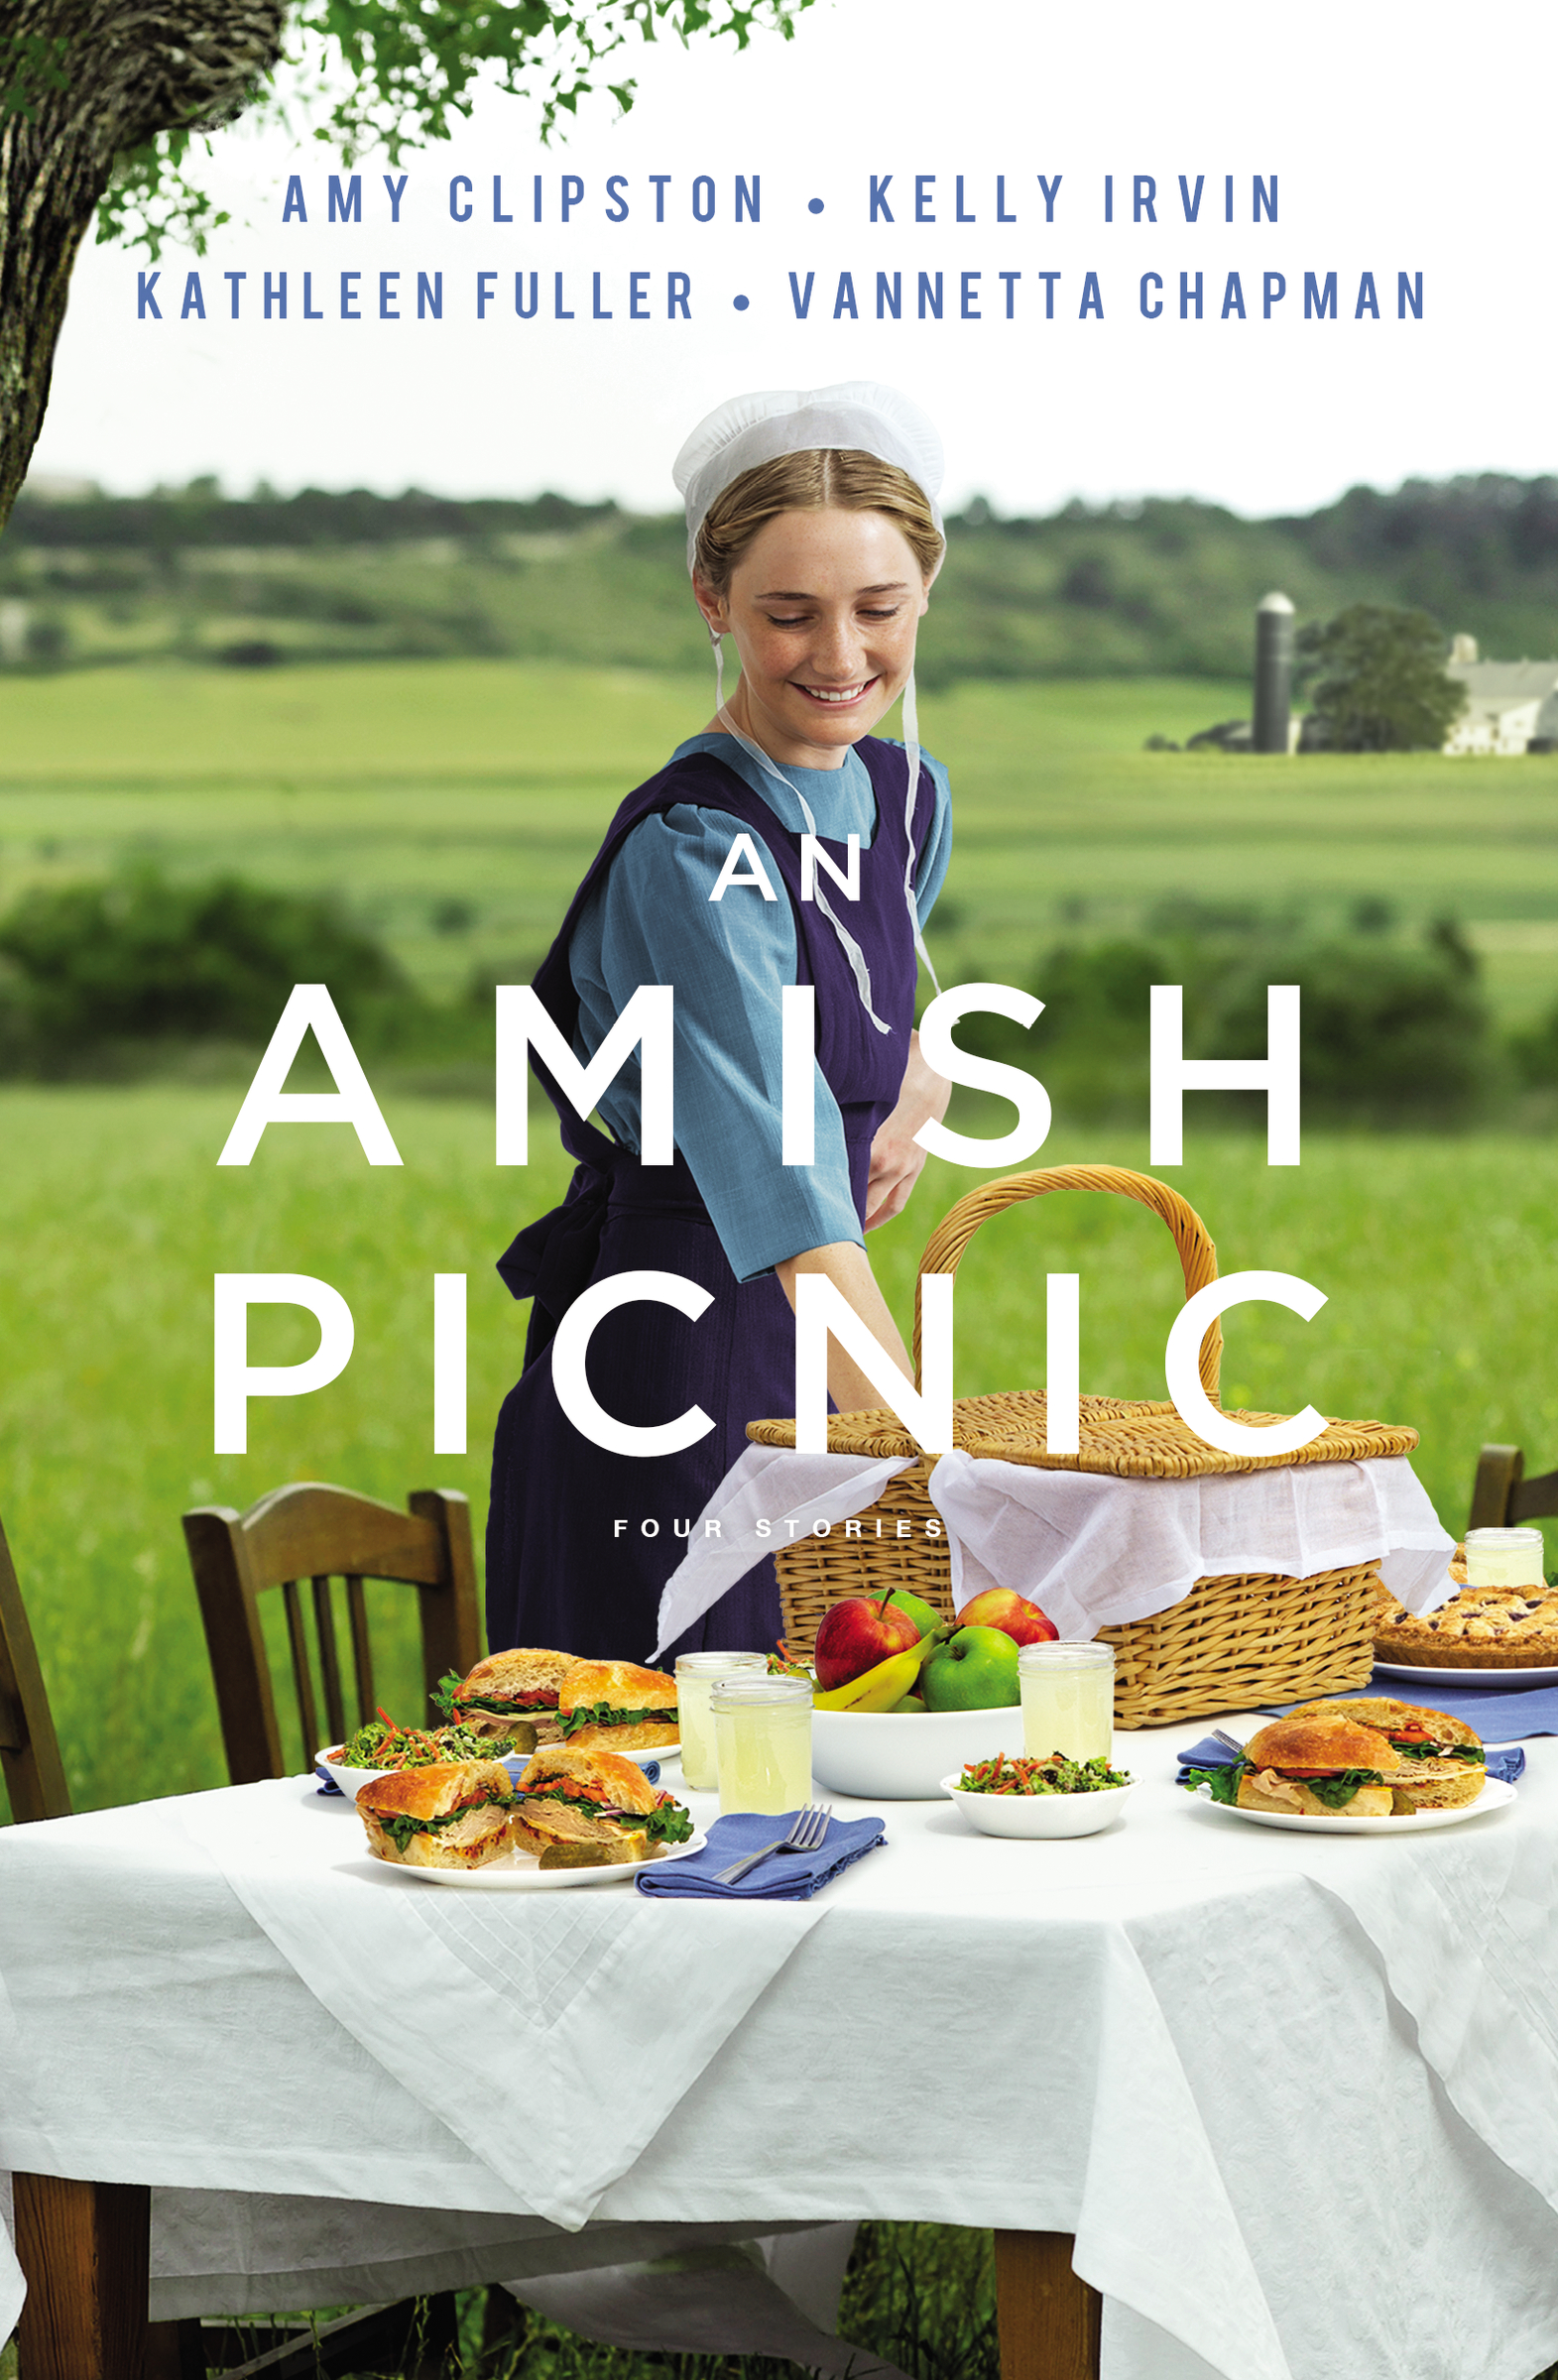 An Amish Picnic Four Stories